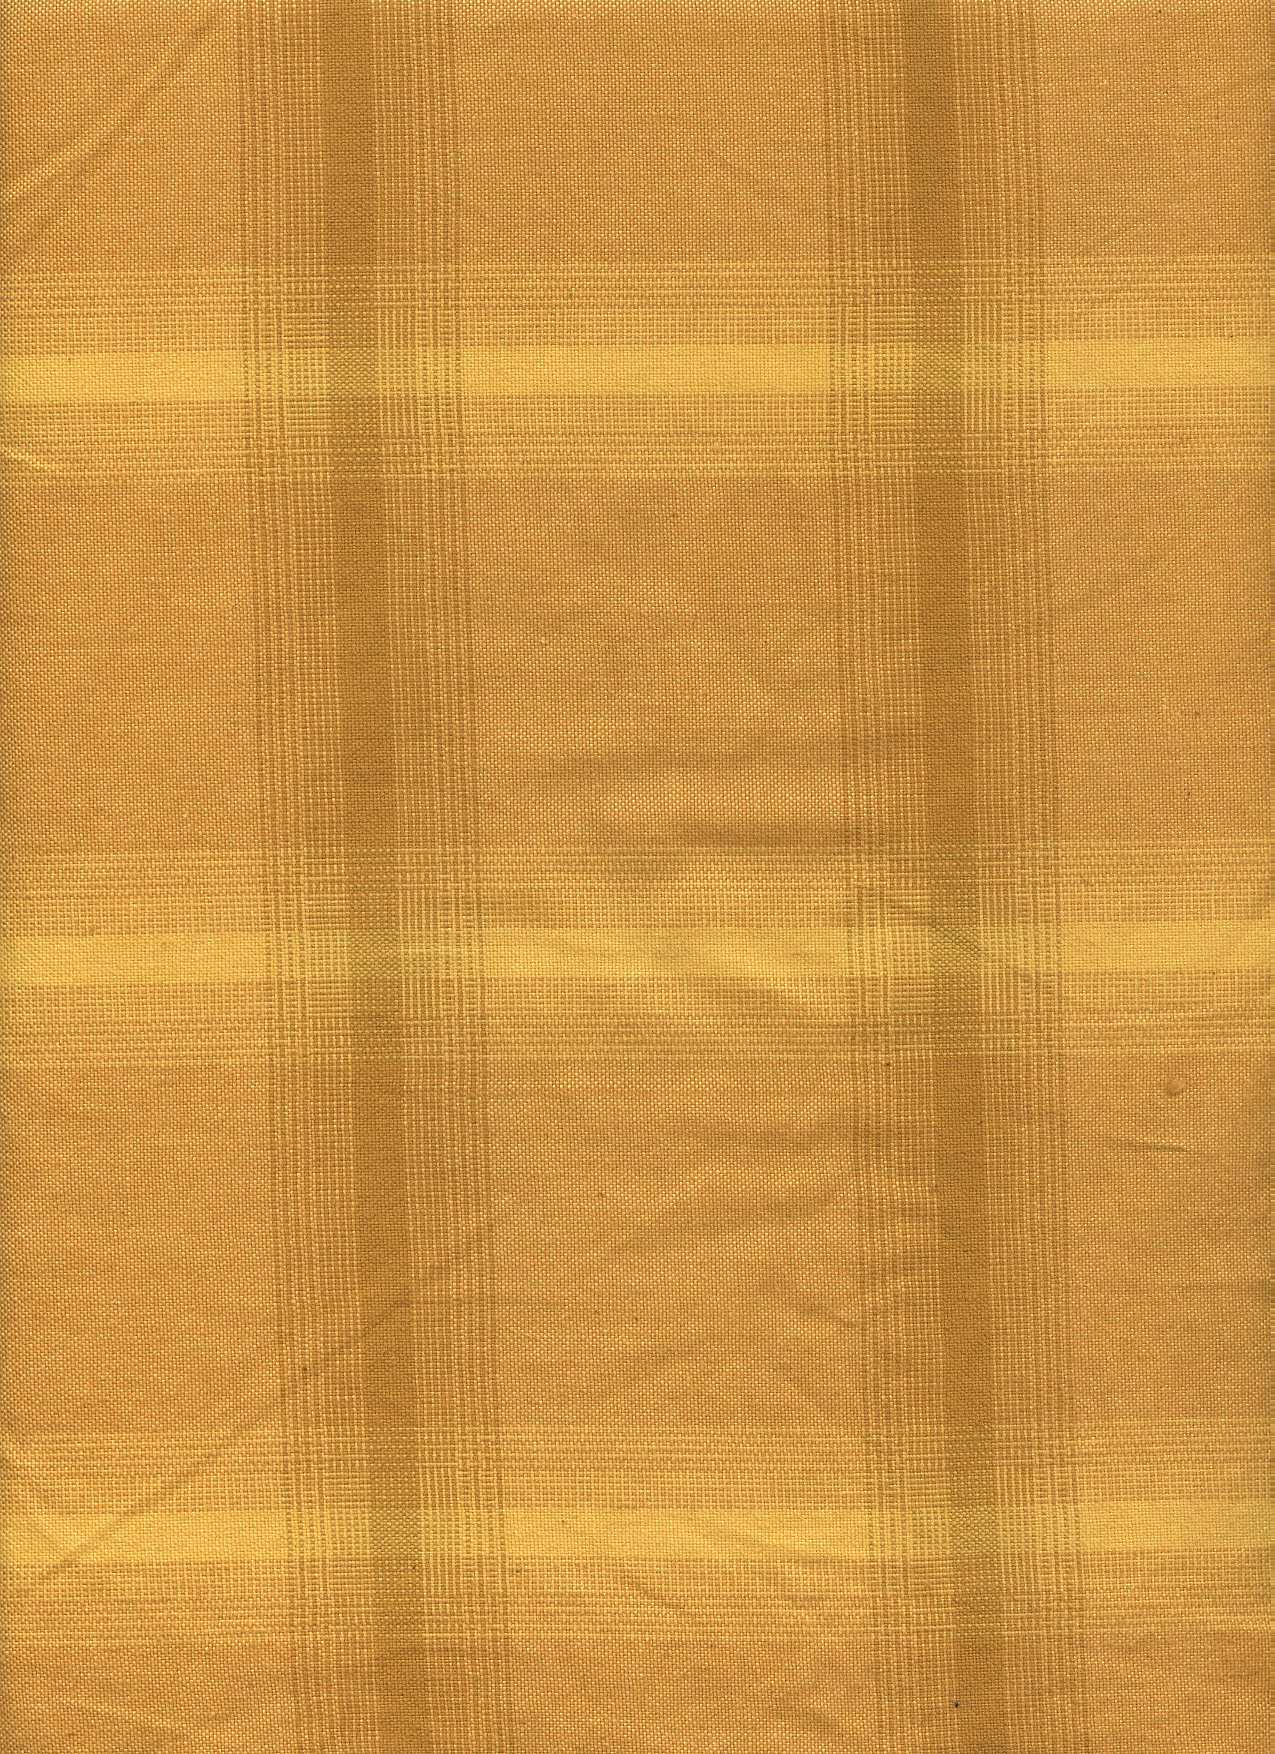 Golden Yellow Tone on Tone Plaid Linen